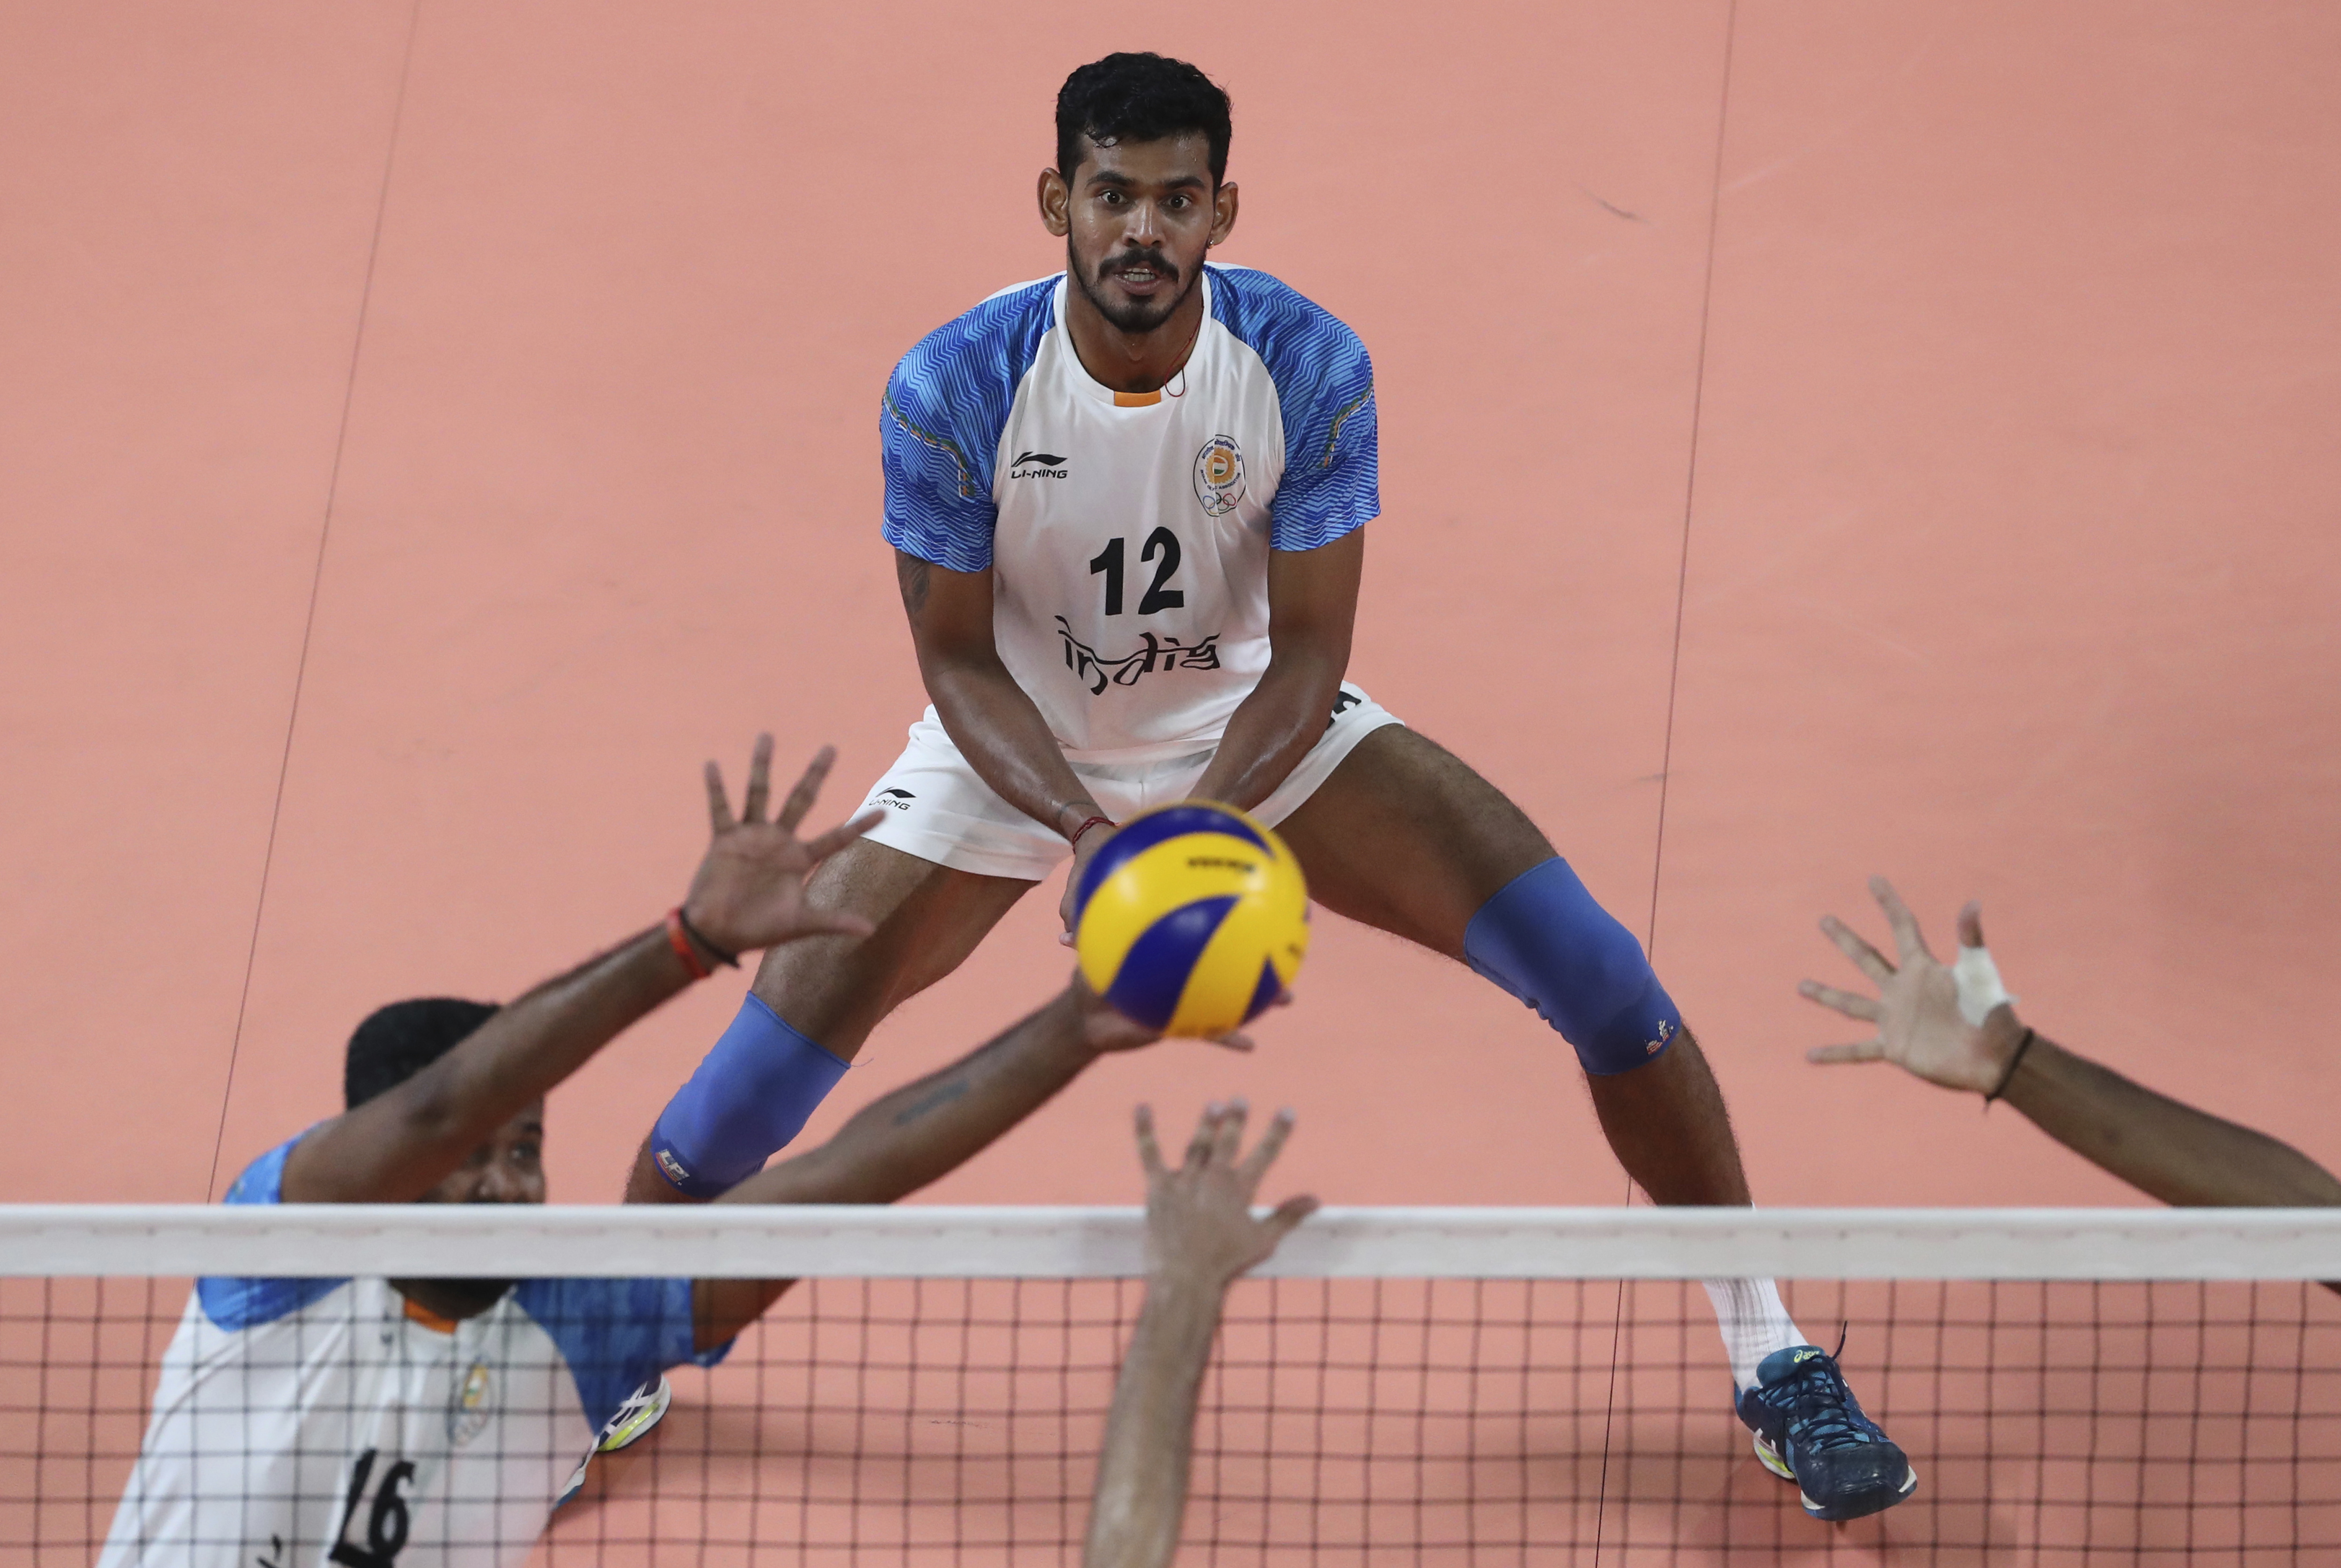 Jerome Charles of India, center, plays